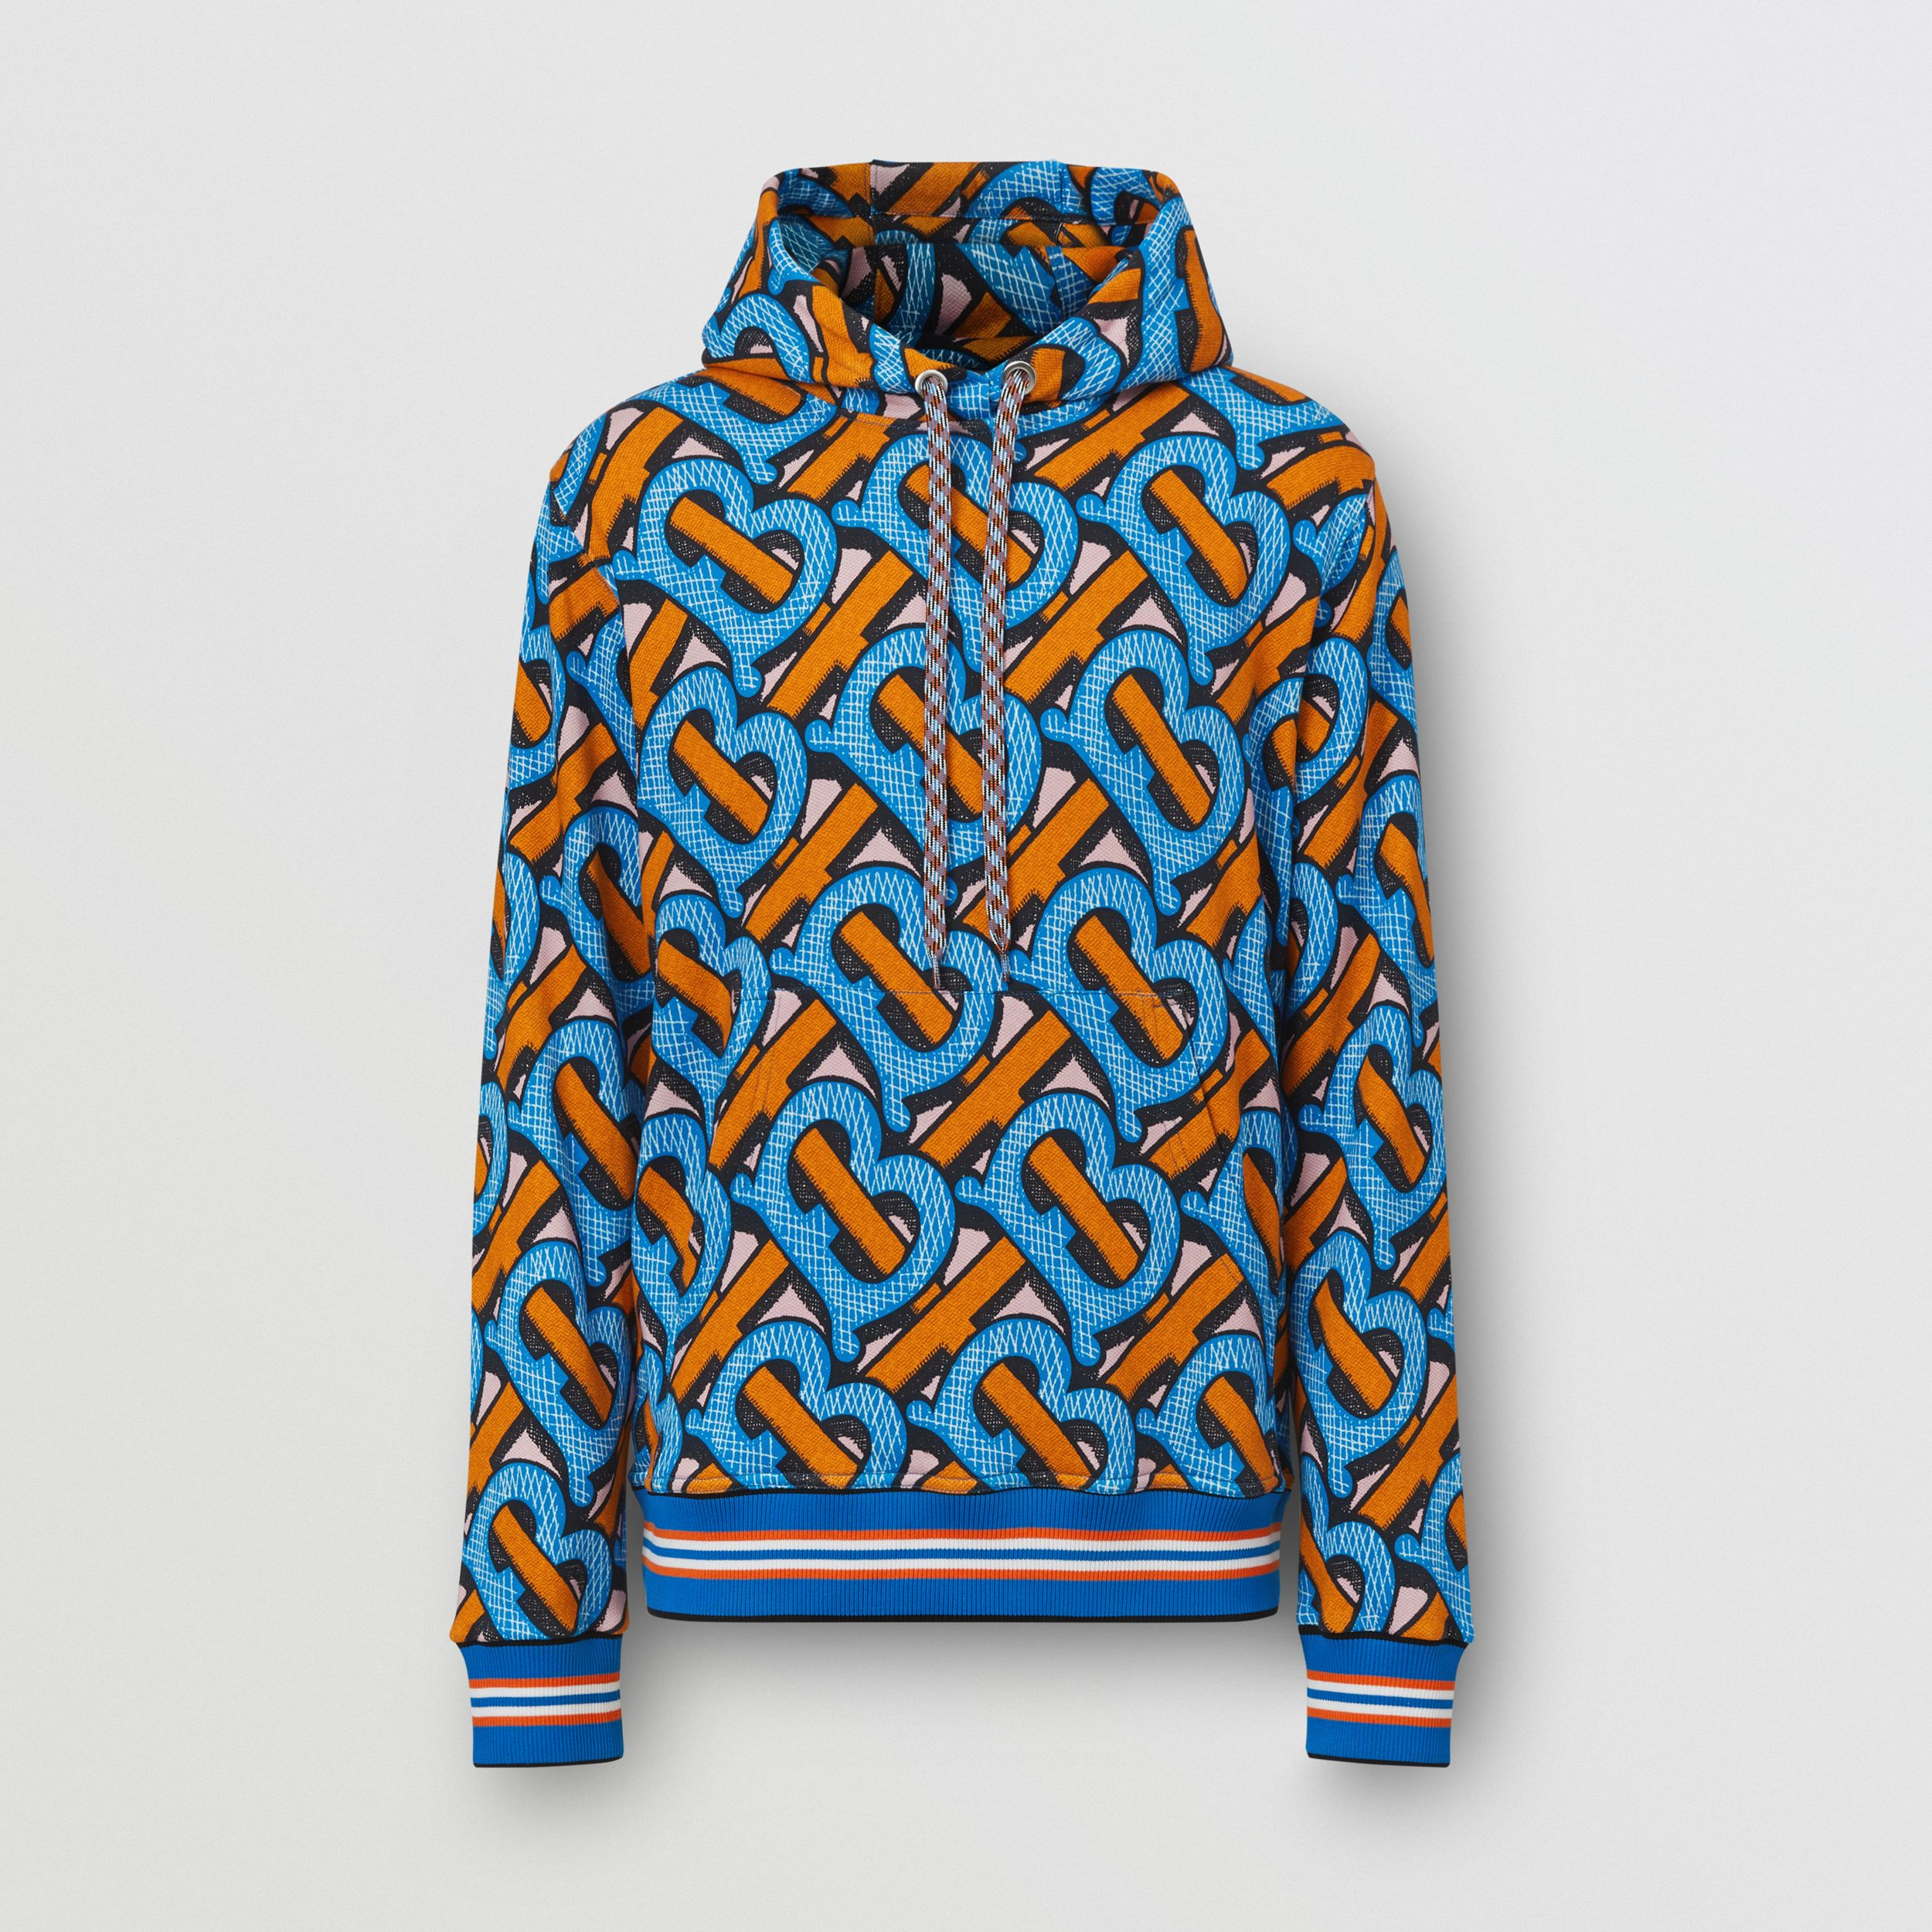 Monogram Print Cotton Hoodie – Unisex in Bright Cobalt | Burberry - 1